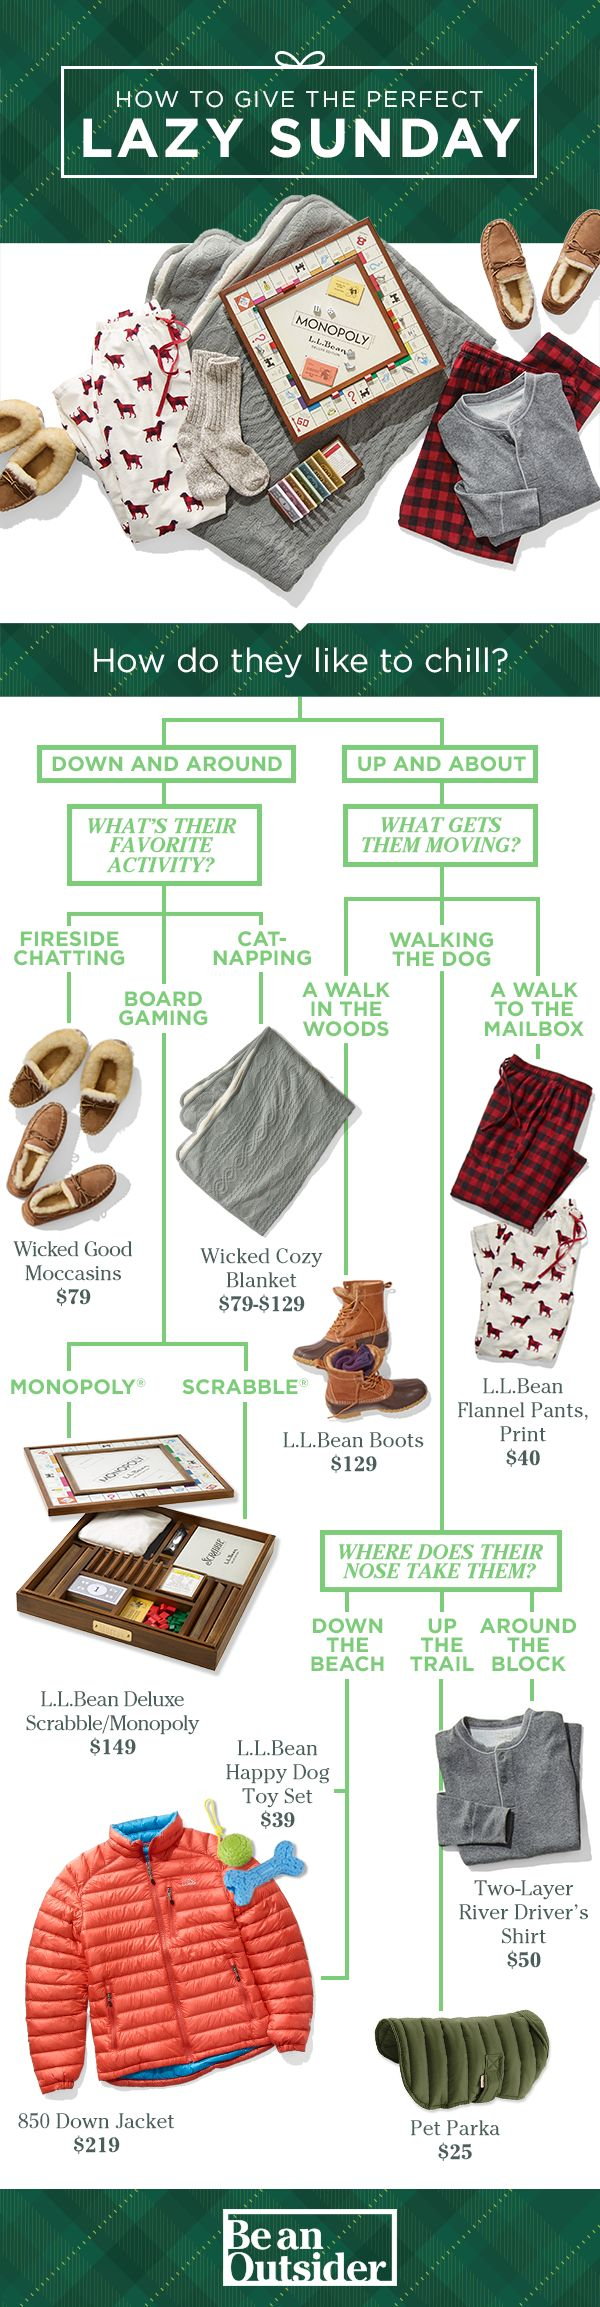 Find the perfect gifts for everyone on your list, no matter how they like to chill. Shop comfy pajamas, warm jackets, and snuggly henleys at L.L.Bean.